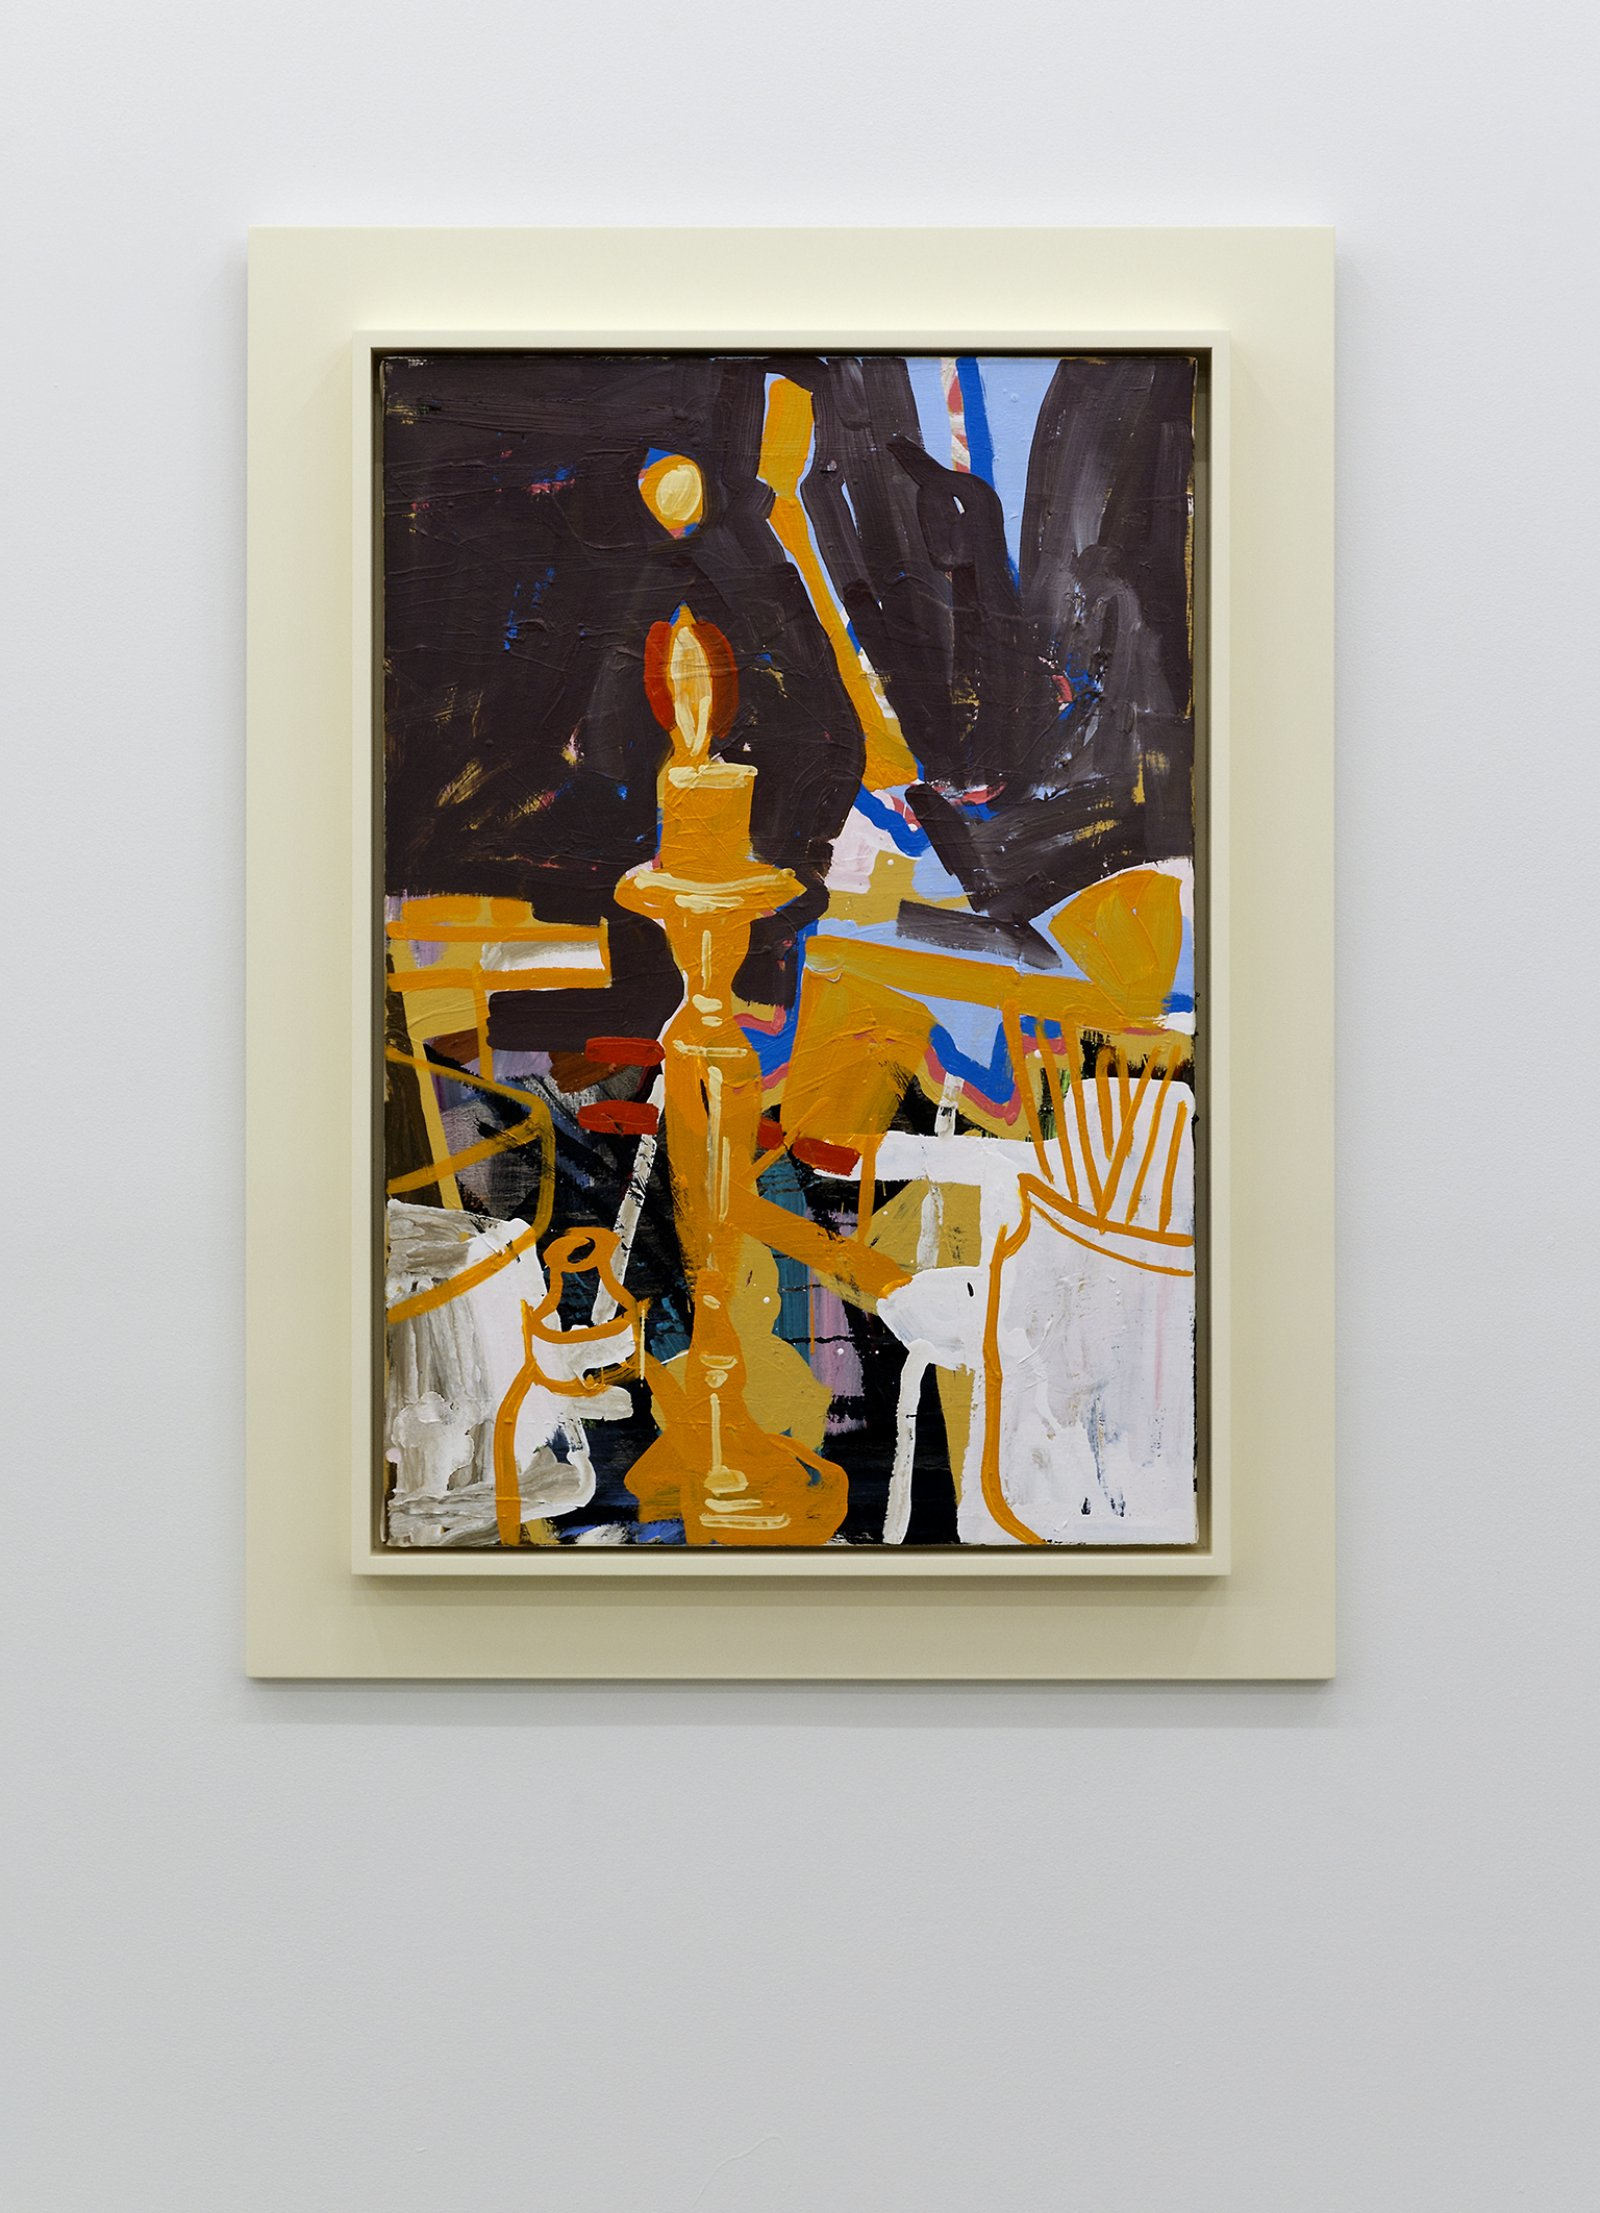 Damian Moppett, Orange Candle, 2010, oil and enamel on linen and wood frame, 40 x 30 in. (100 x 76 cm) by Damian Moppett